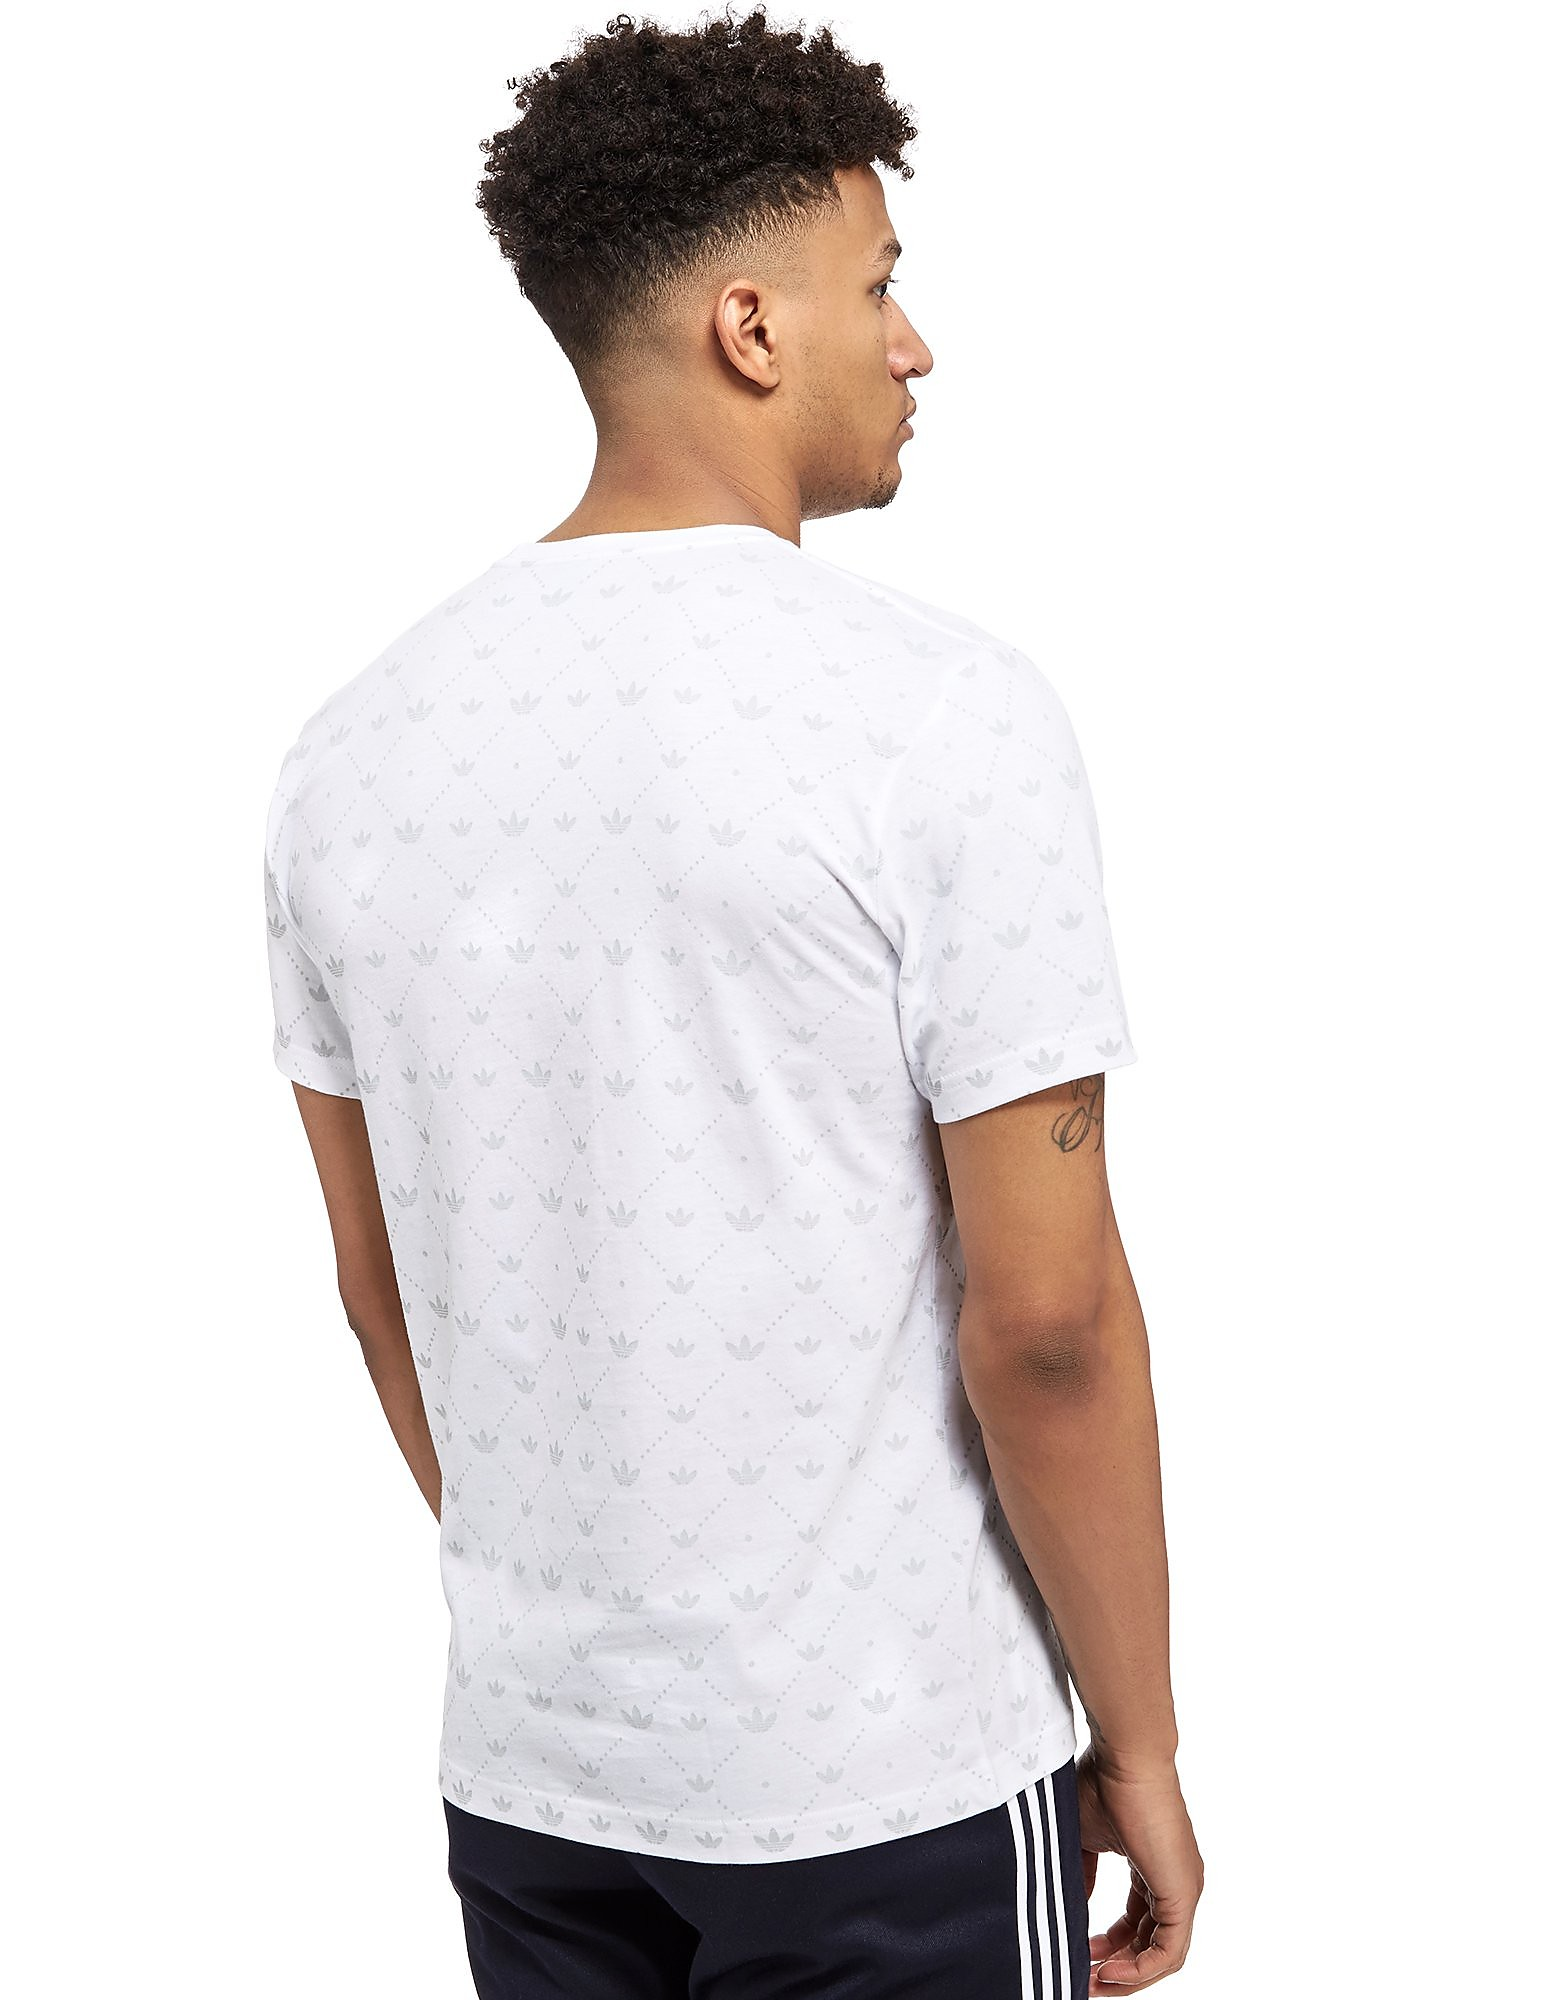 adidas Originals Trefoil All-Over-Print T-Shirt